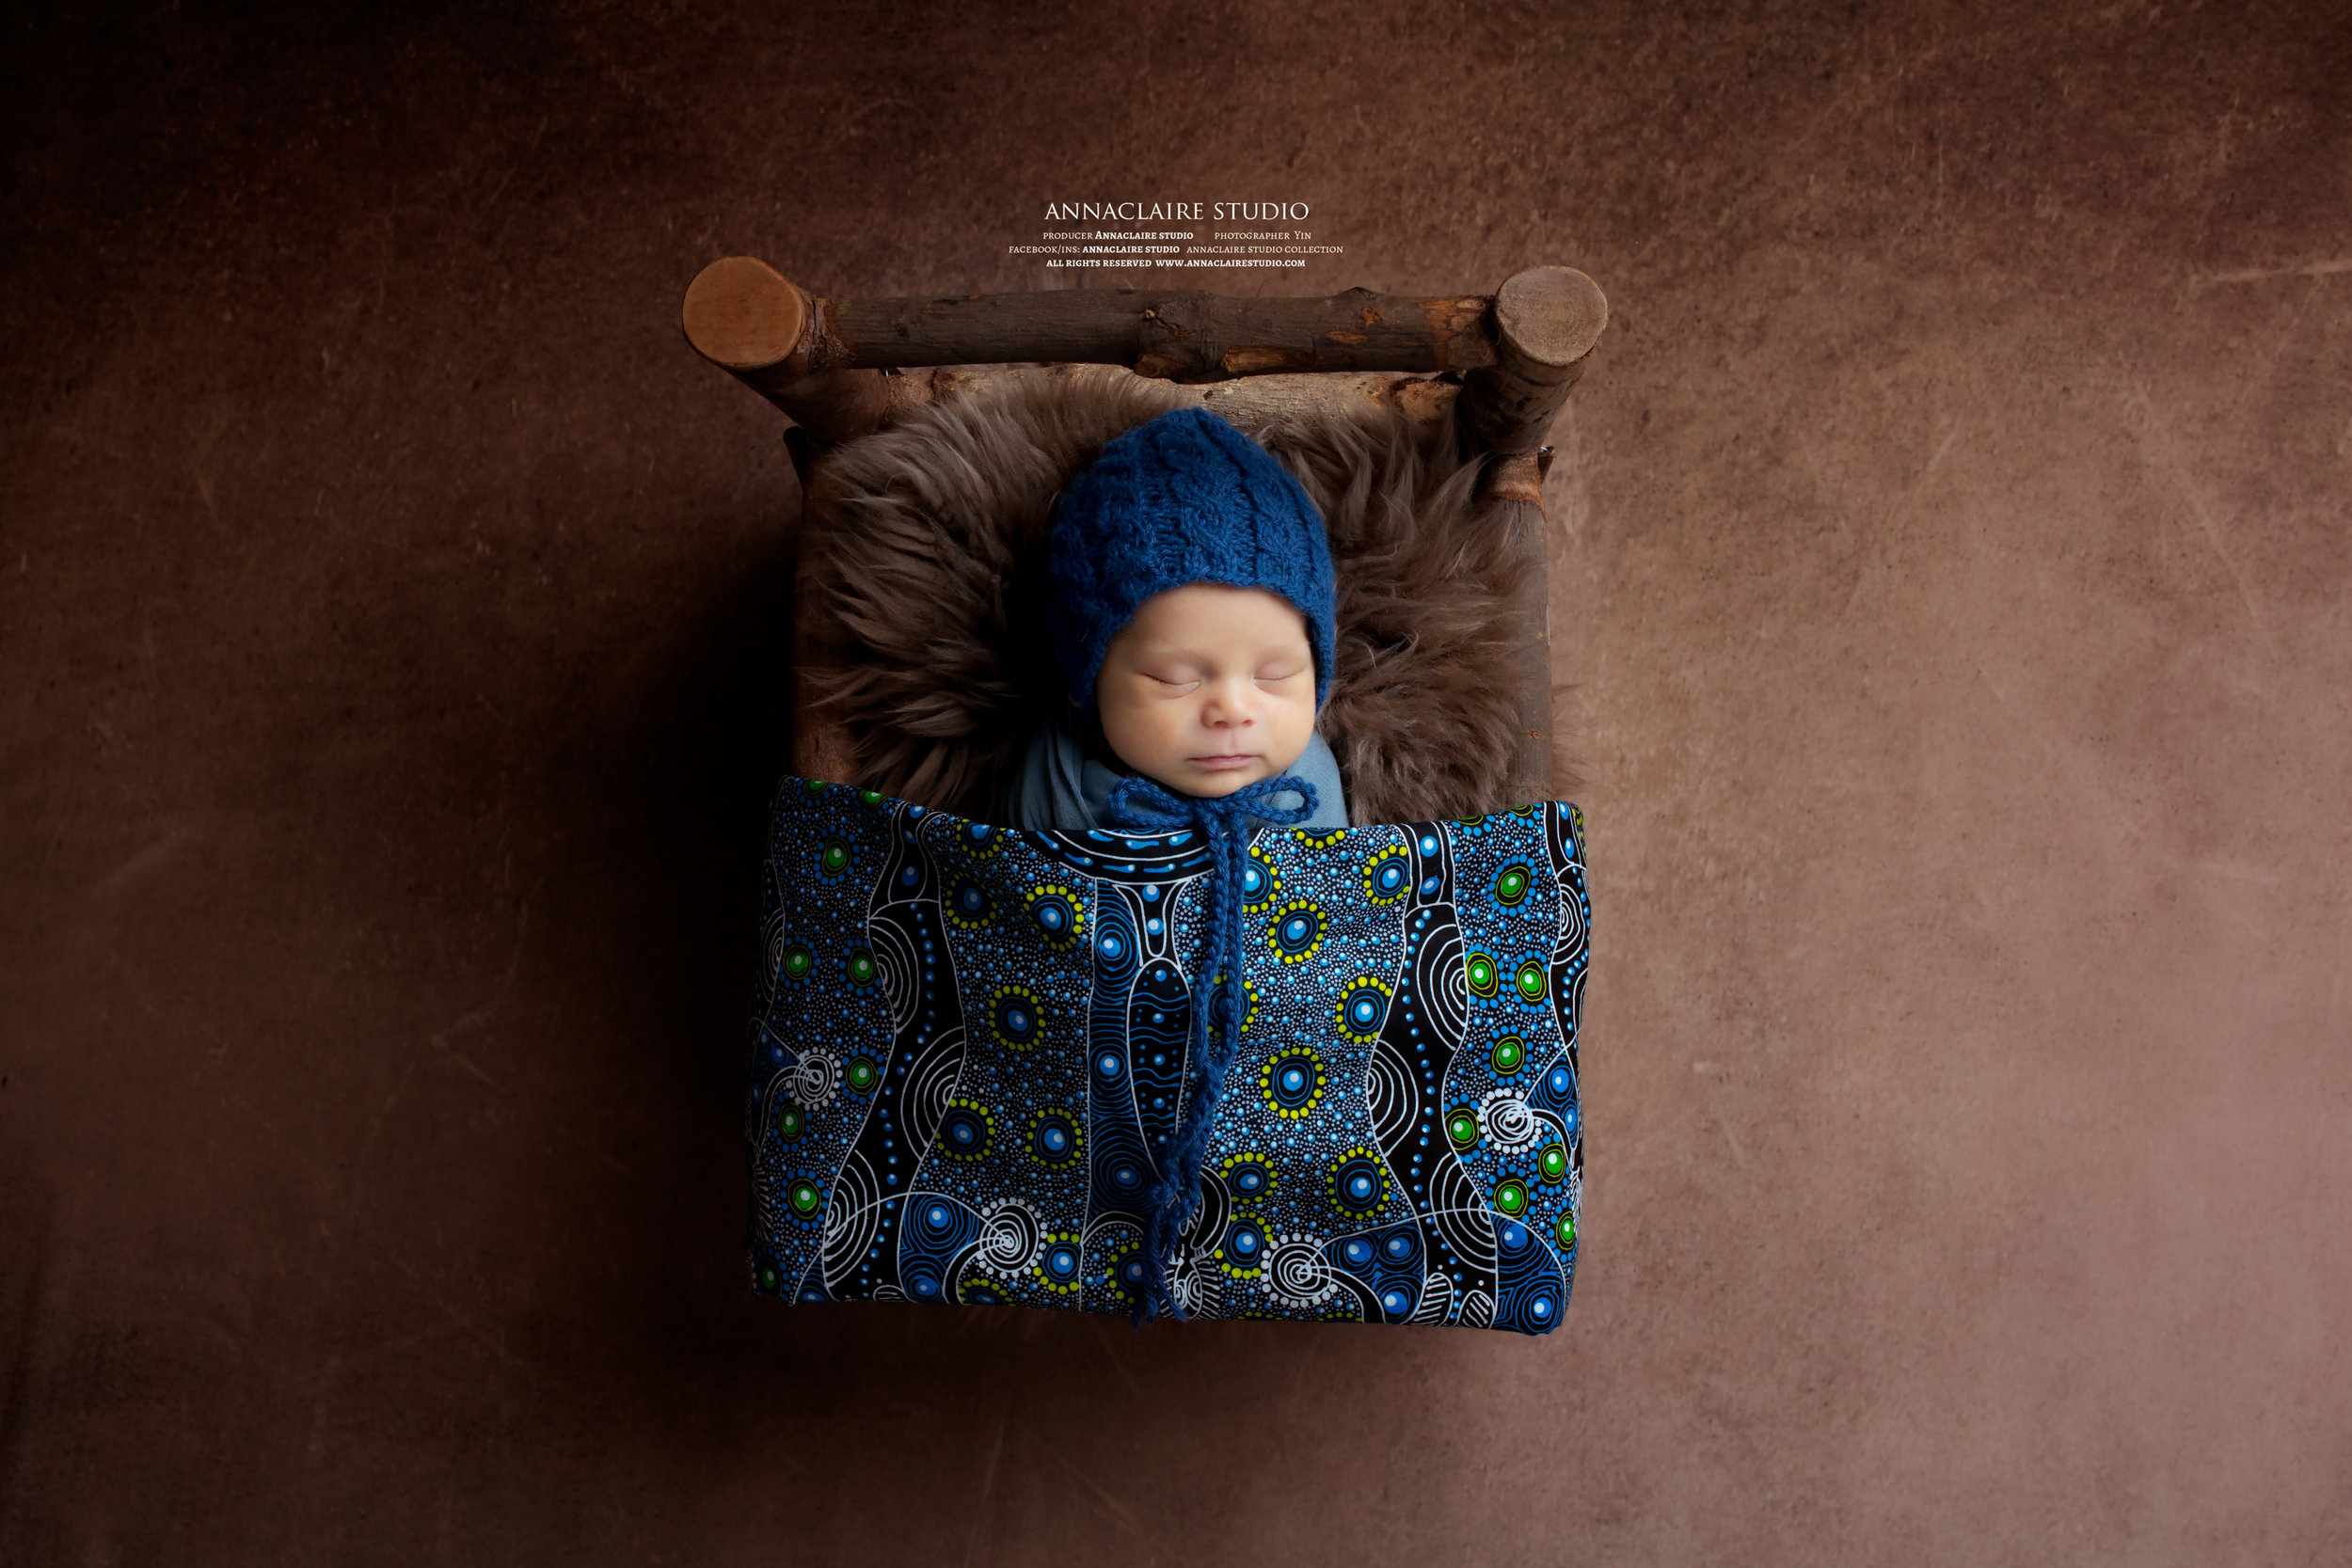 newborn photo by annaclaire studio 悉尼新生儿摄影 (1 of 1) (1).jpg